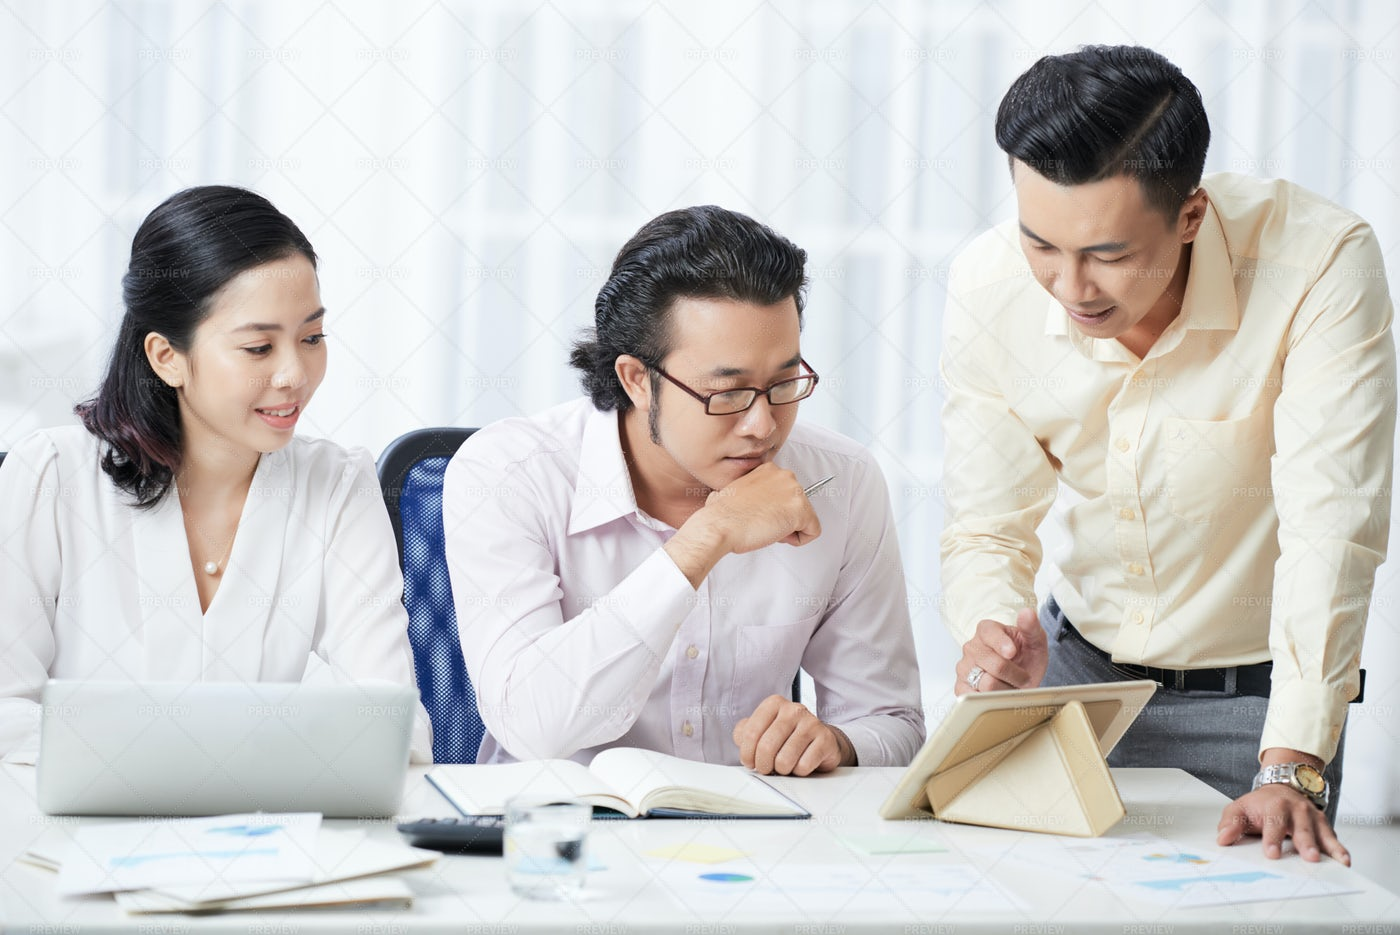 Business People Working In Team At: Stock Photos